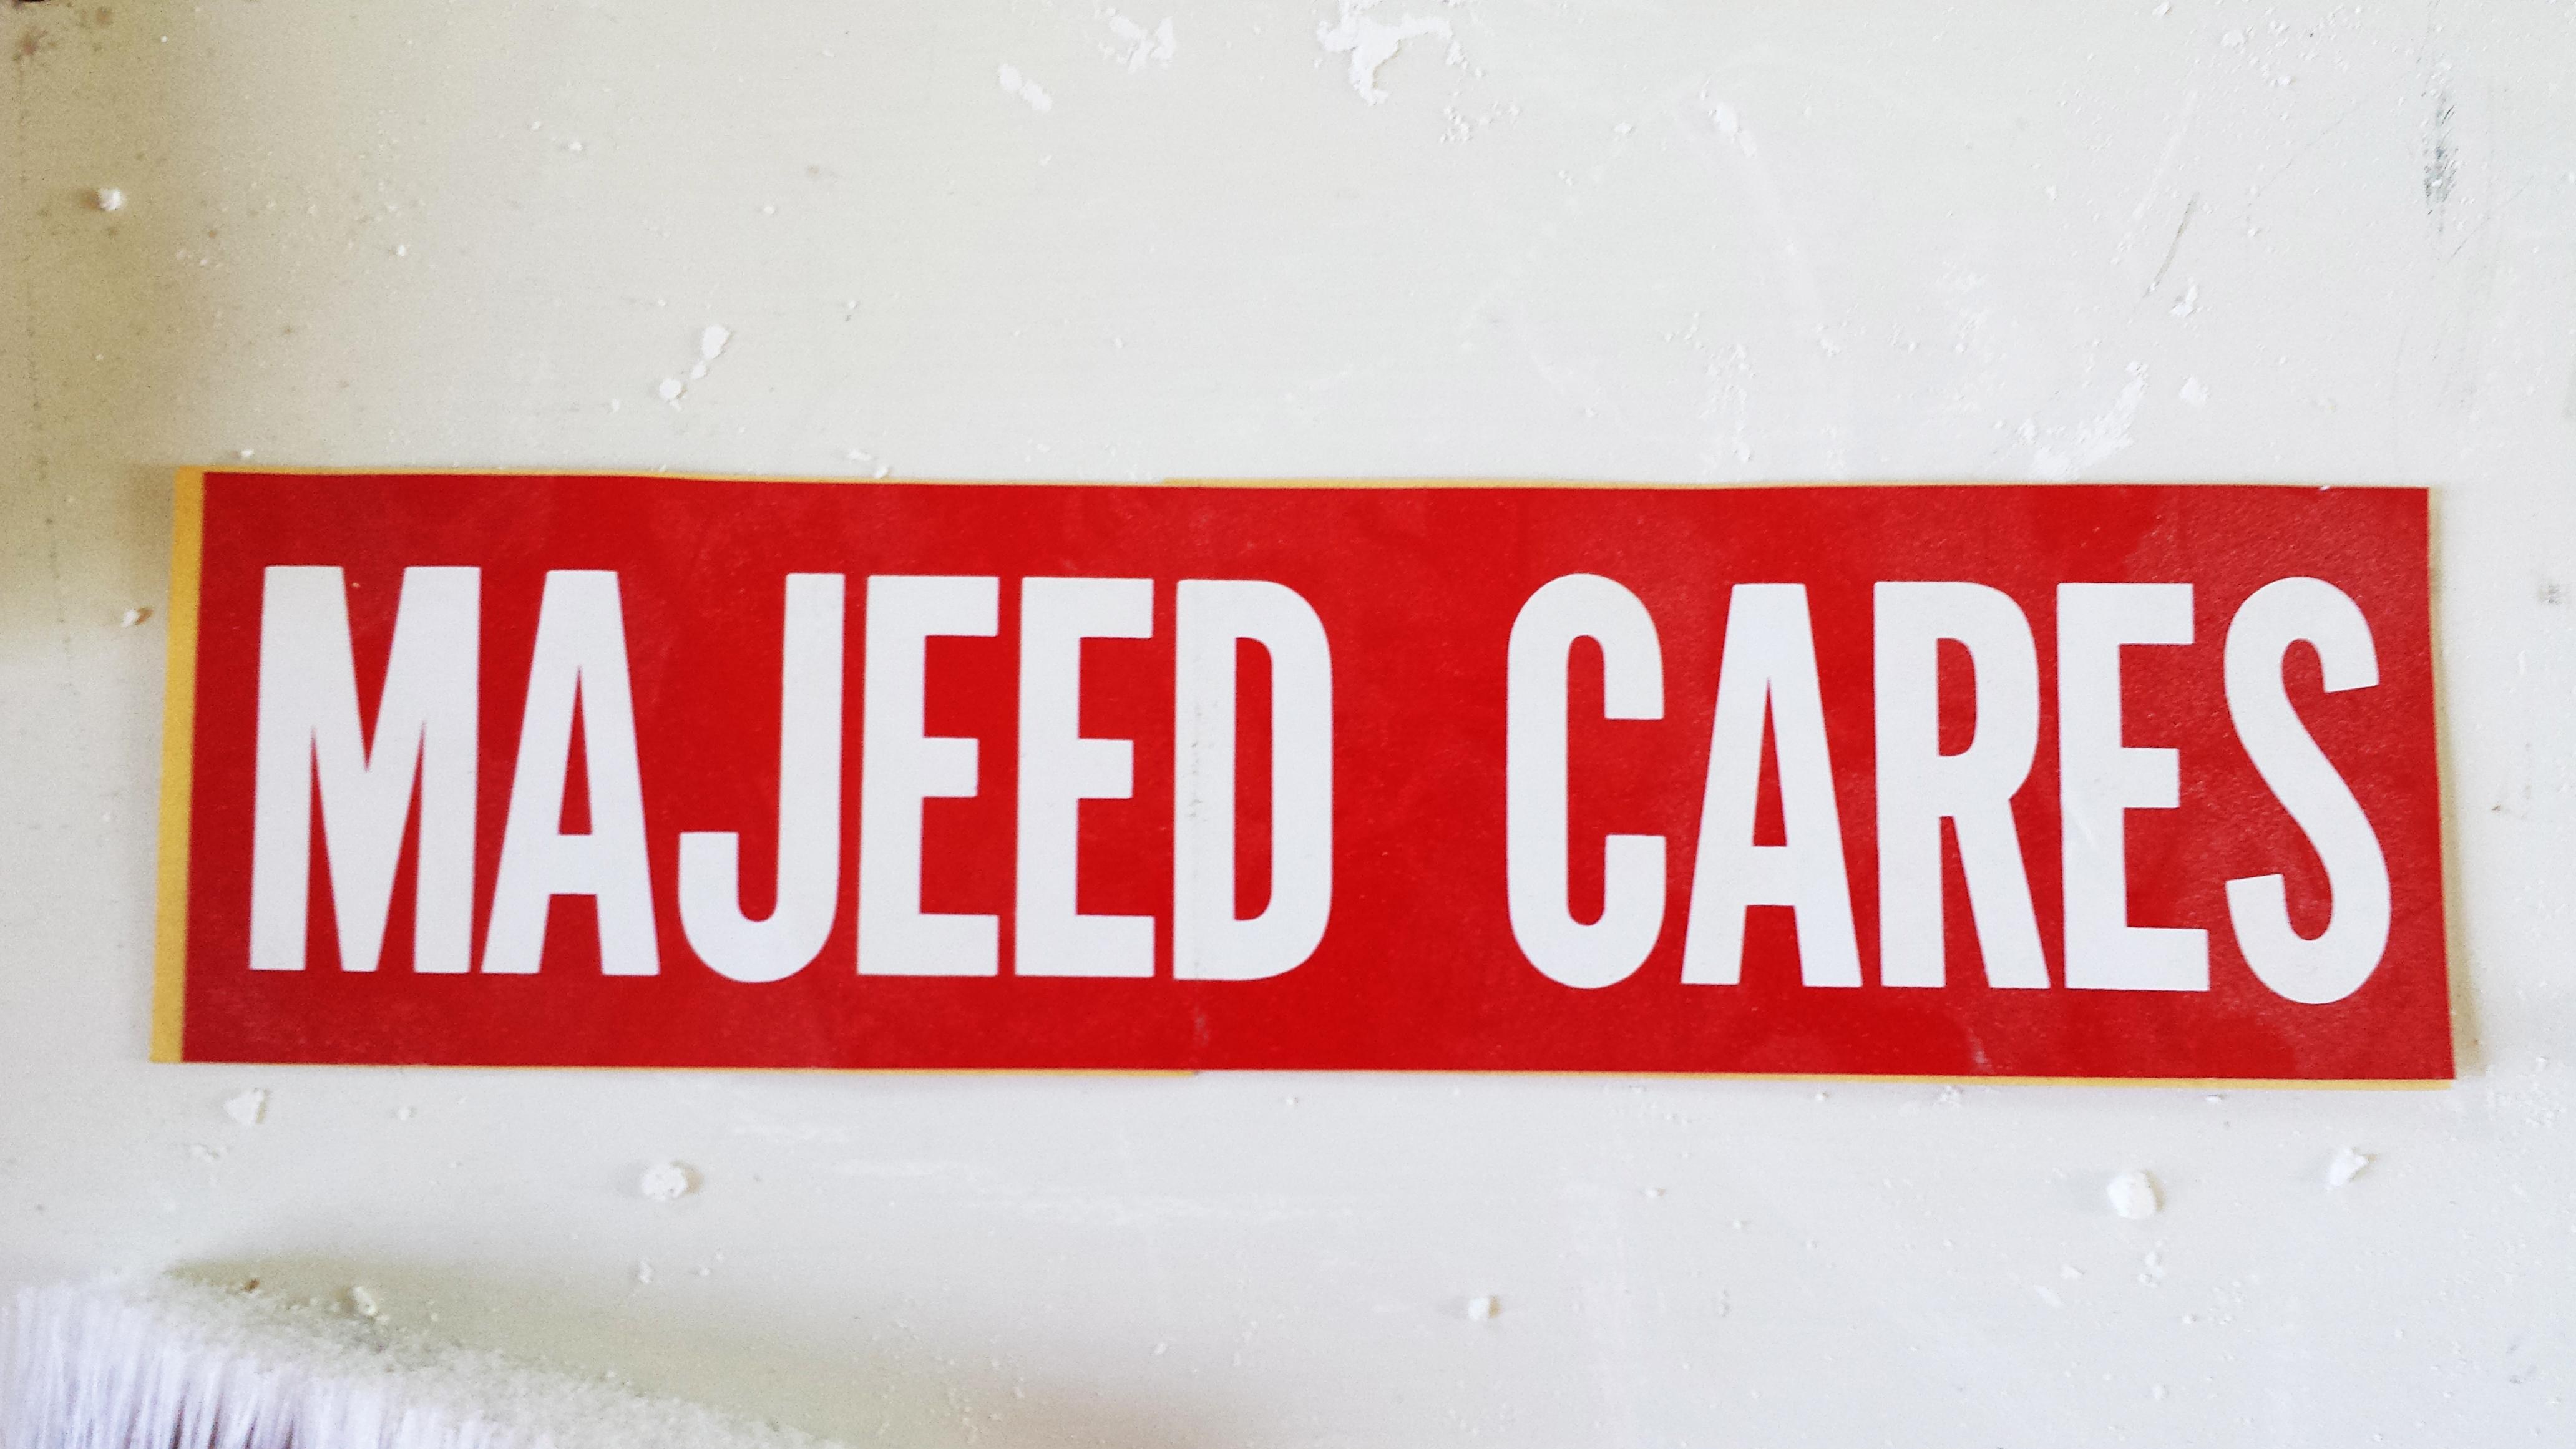 """A red bumper sticker with white text that reads """"Majeed Cares"""" lies on a white floor covered in flecks of white plaster and paint."""